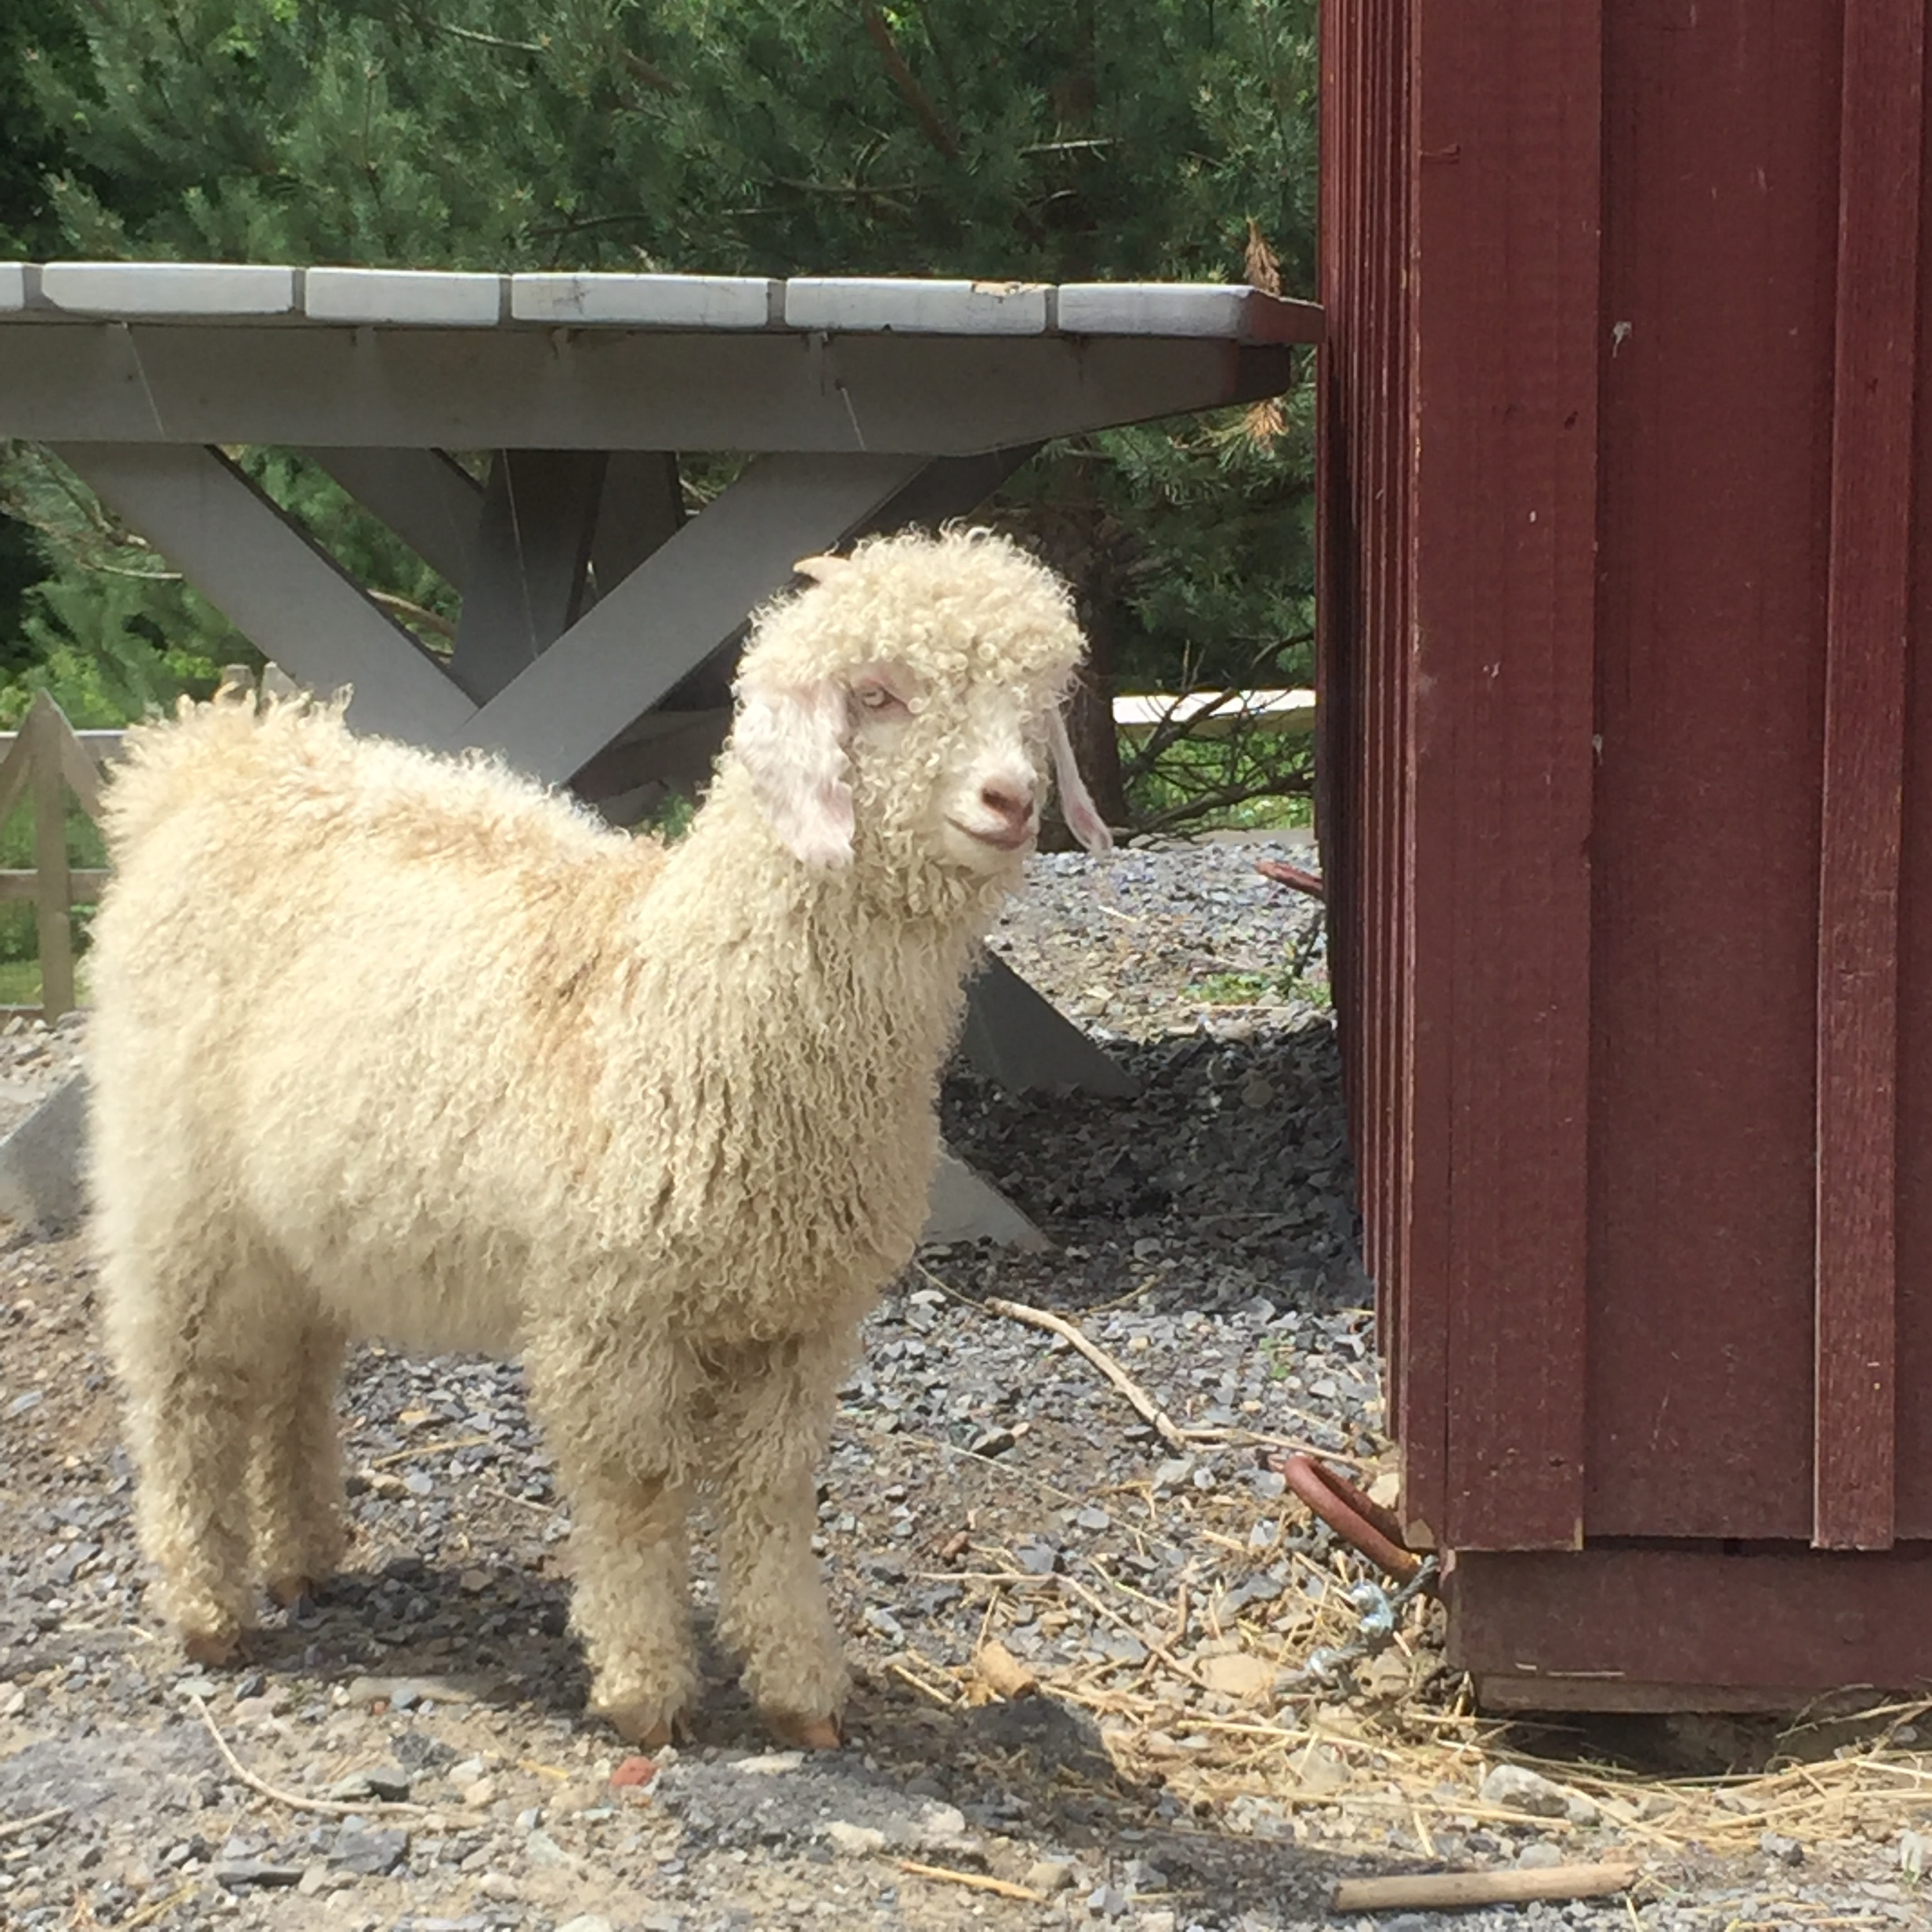 """Nanny also came from the angora farm of 800. She was properly weaned from mom and came to us at 12 weeks. Having never really been around people, she was super shy, skittish and beyond nervous. Mo was fiercely afraid of Nanny: we think Mo thought he was a Nigerian goat. He'd run and hide from Nanny because she looked and smelled different. Olaf, Sven and Ana weren't as taken back by her white fiber. Nanny would often hide in a garbage can out of nervousness. Ana and Elsa became her friends and slowly but surely, she became part of the herd. When Ana had her babies we'd find Nanny in the birthing pen with Ana. Their friendship has blossomed especially after Elsa's tragic death. It's taken awhile for Nanny to come and cuddle with us, but she is not afraid to come for treats. Large crowds still """"freak"""" her out a bit. Although super shy and lower on the pecking order of of goats, she was ironically the first to accept the baby calves. I think she really wants to be a mom. We're hoping..."""